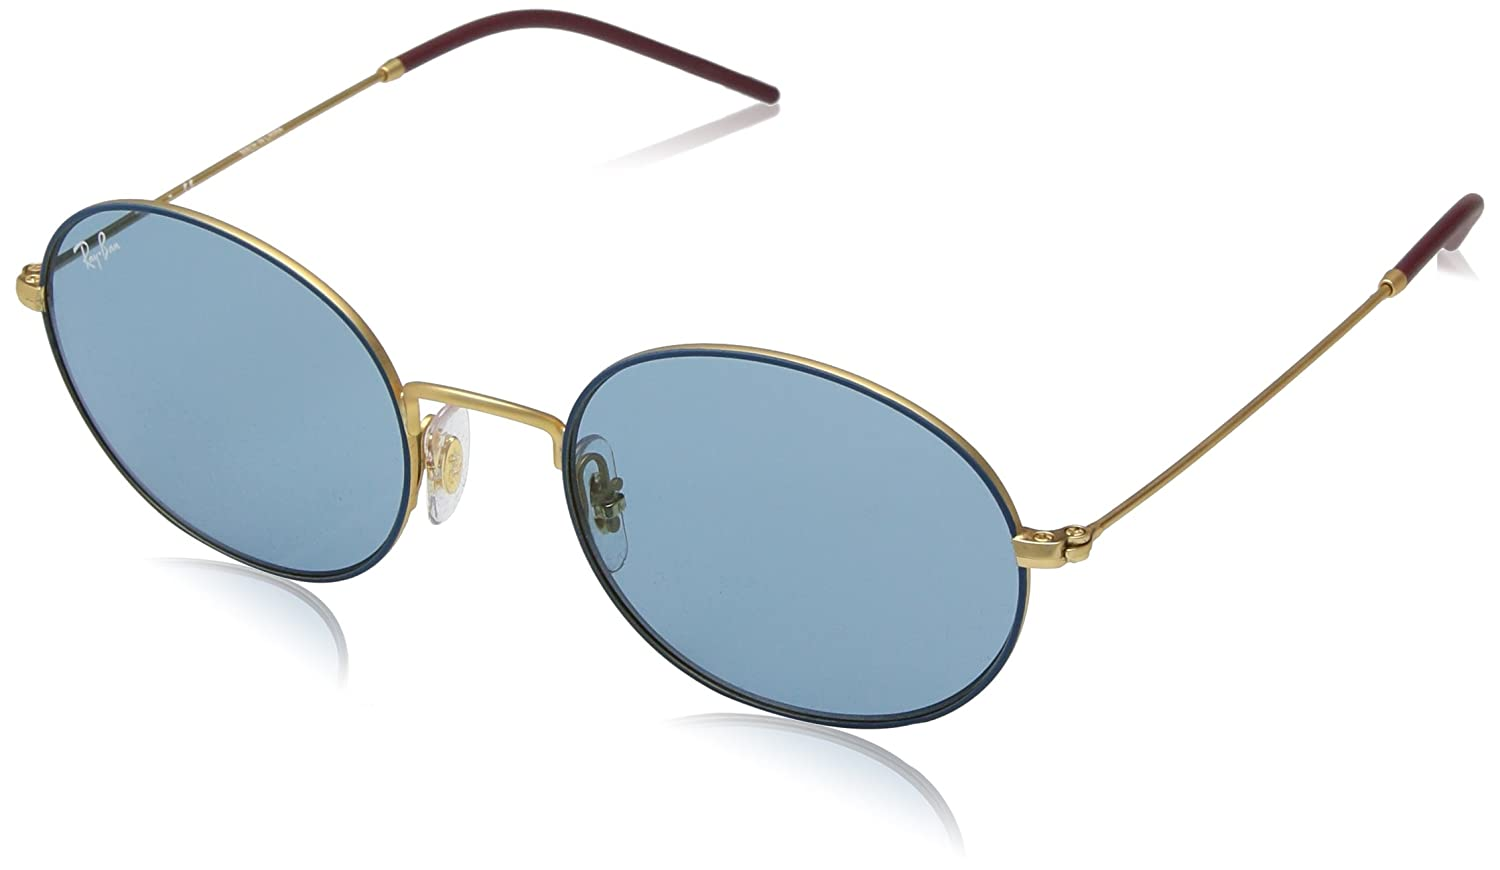 e424e9d18d Amazon.com  Ray-Ban 0rb3594 Oval Sunglasses GOLD ON TOP BLUE 53 mm  Clothing